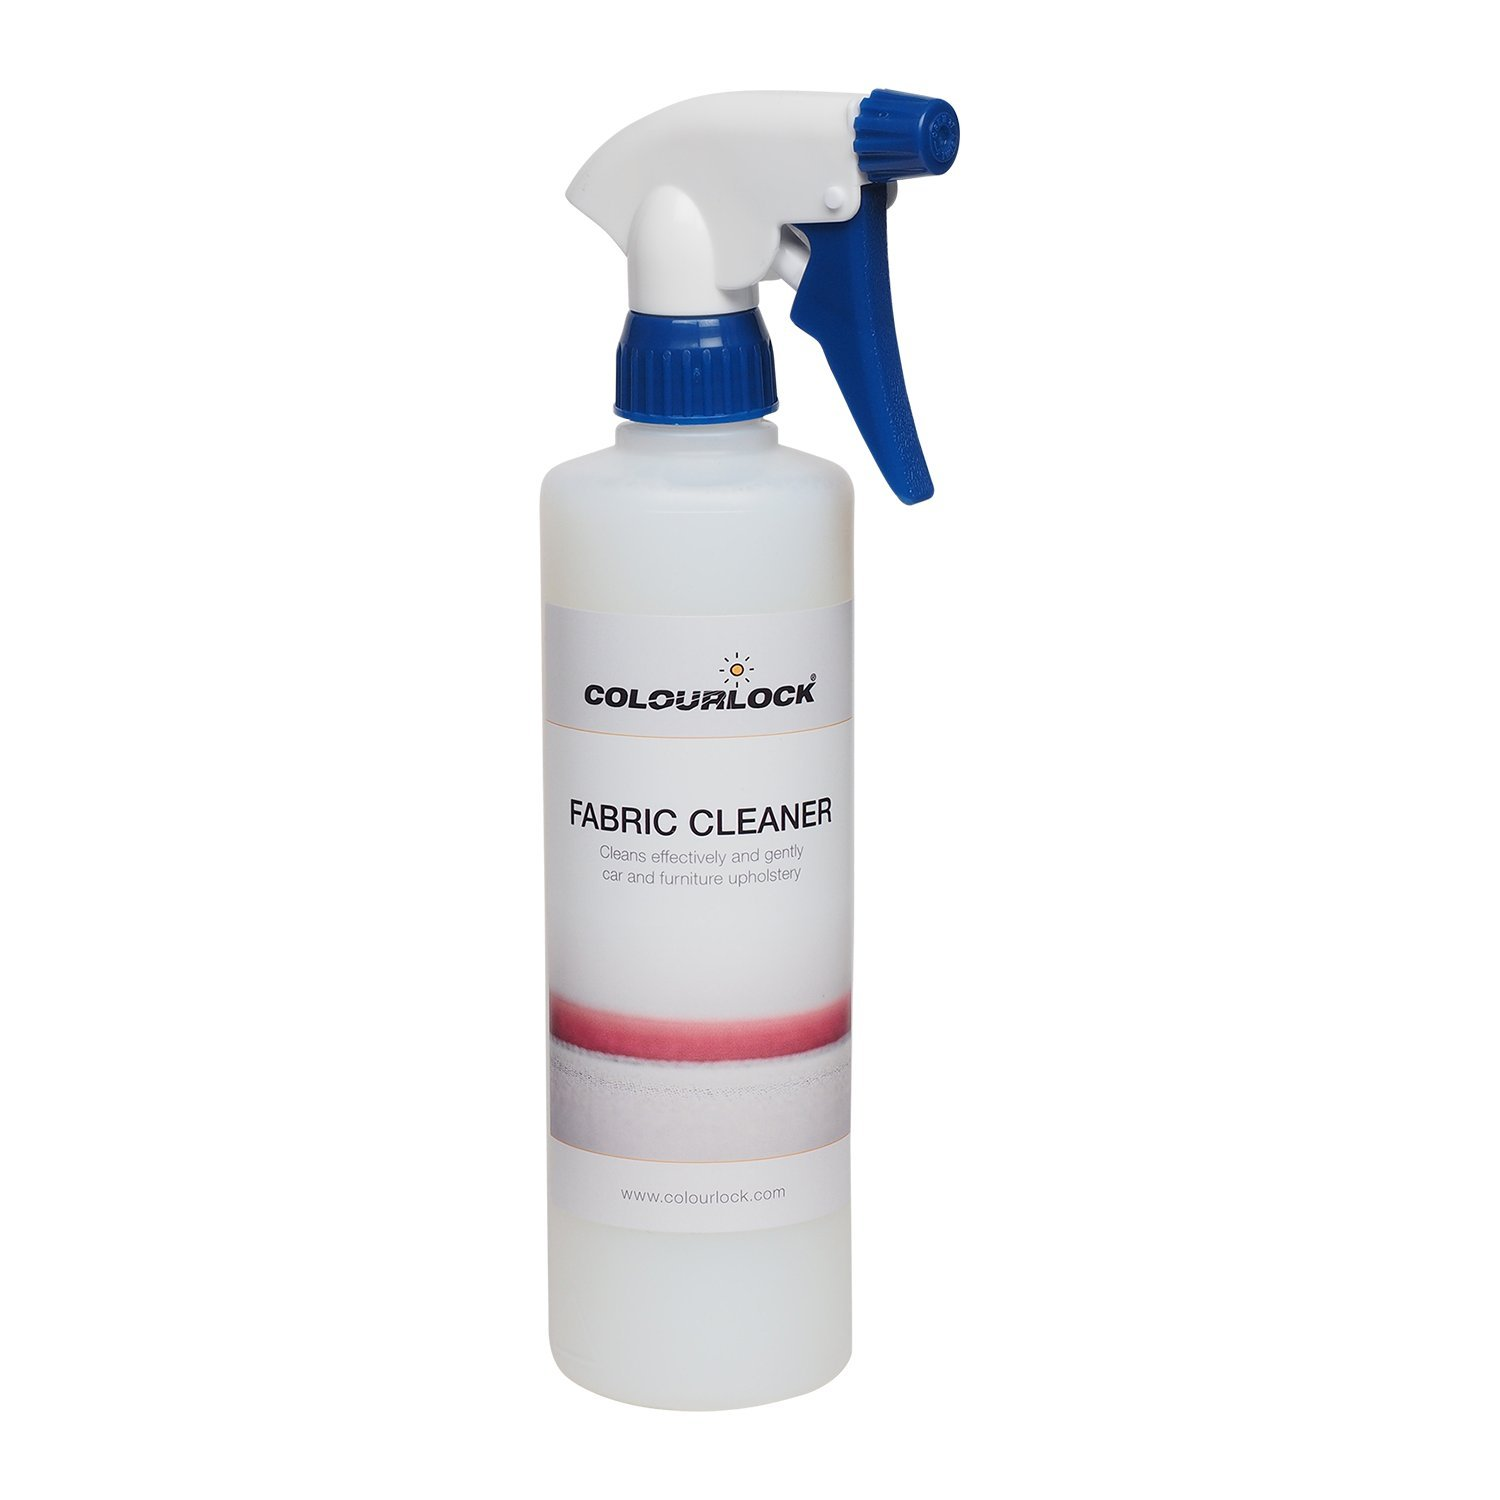 COLOURLOCK Alcantara Leather & Textile Cleaner 500ml / 18fl oz for car seats, carpets, cloth & fabric interior and furniture upholstery by Colourlock (Image #1)